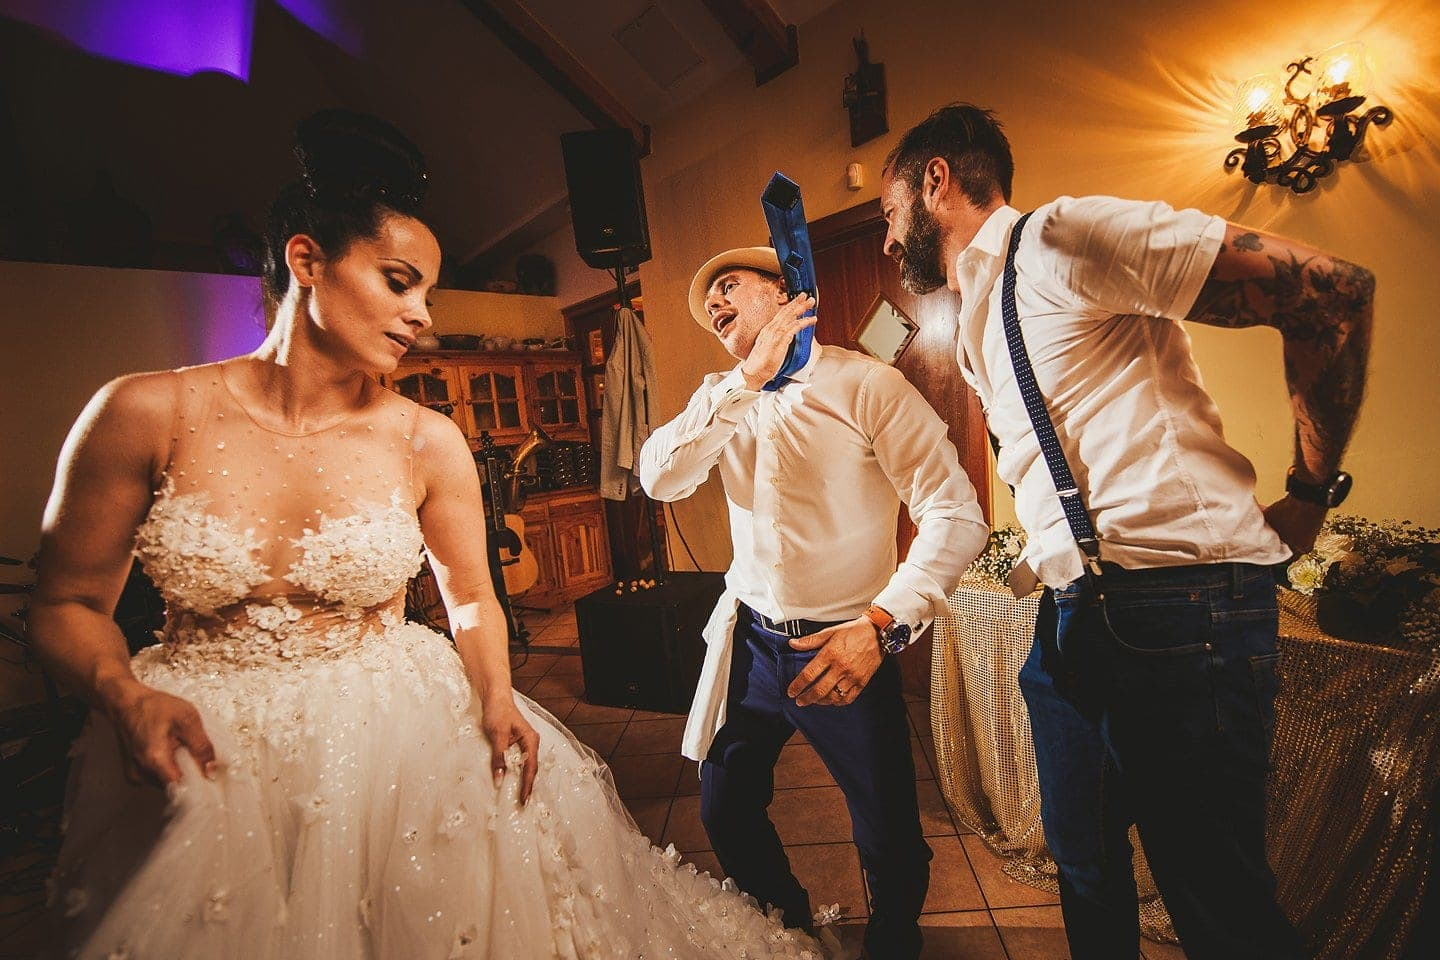 Best Of 2018 Wedding Photography by Aleks & Irena Kus 41